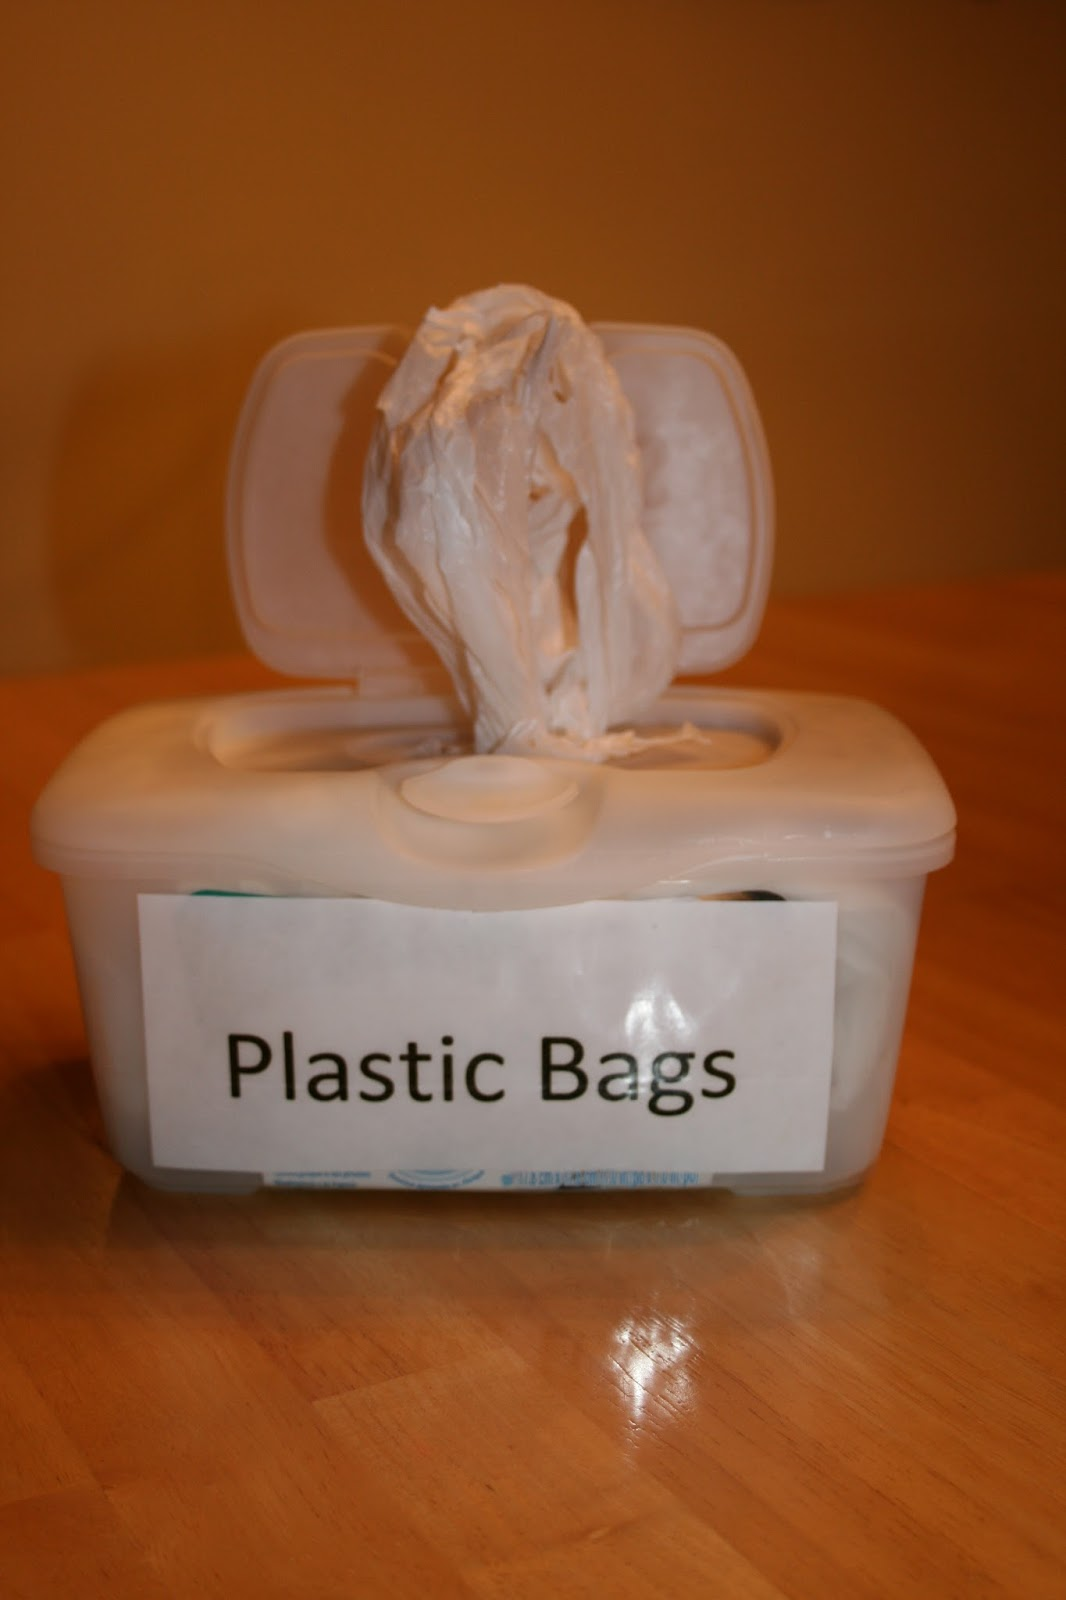 How To Reuse Baby Wipe Containers To Store Plastic Bags